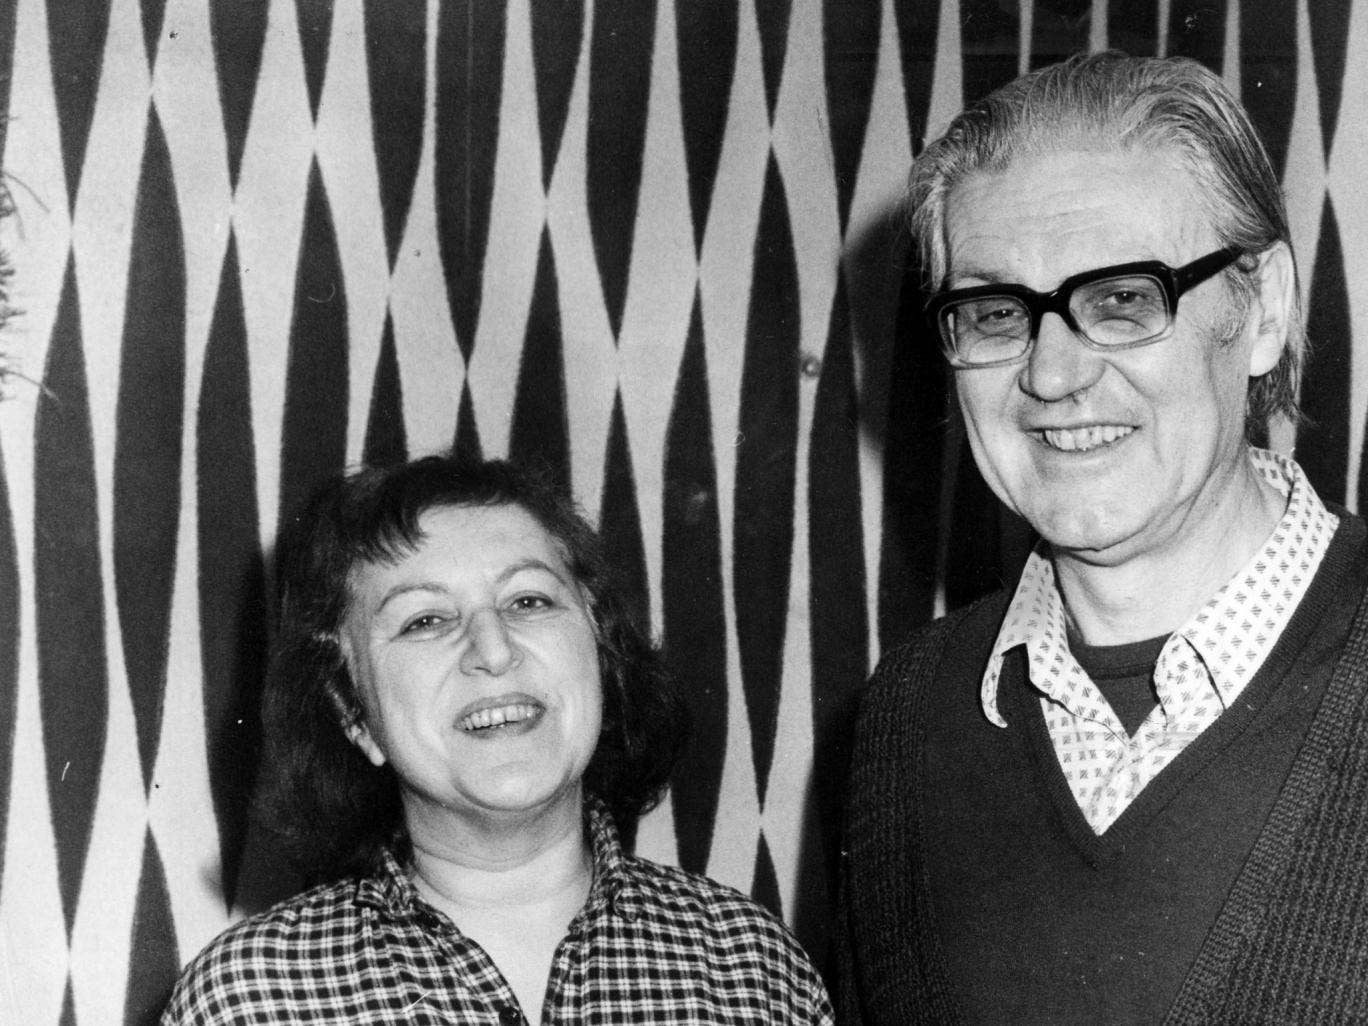 Vera and Vladimir Derer at their home in Golders Green, north London, in 1981